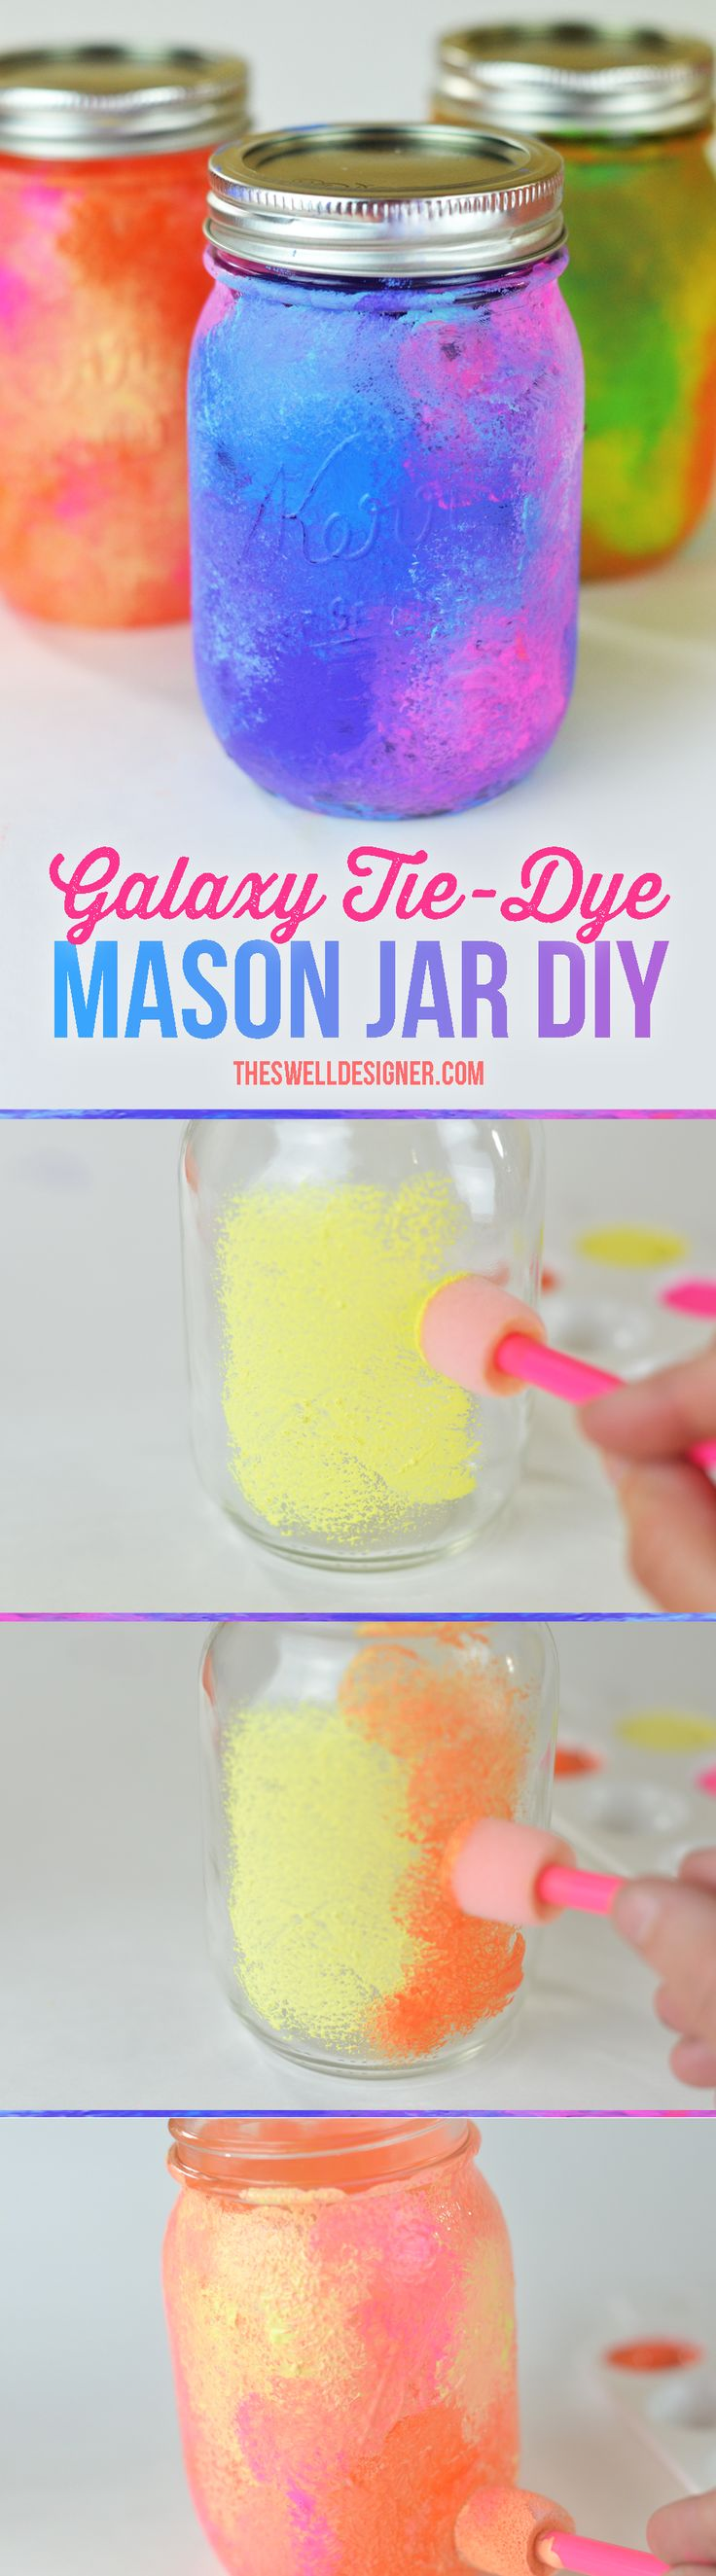 Make your own tie dye galaxy jars in just a few steps using paint, a pouncer and mason jars.